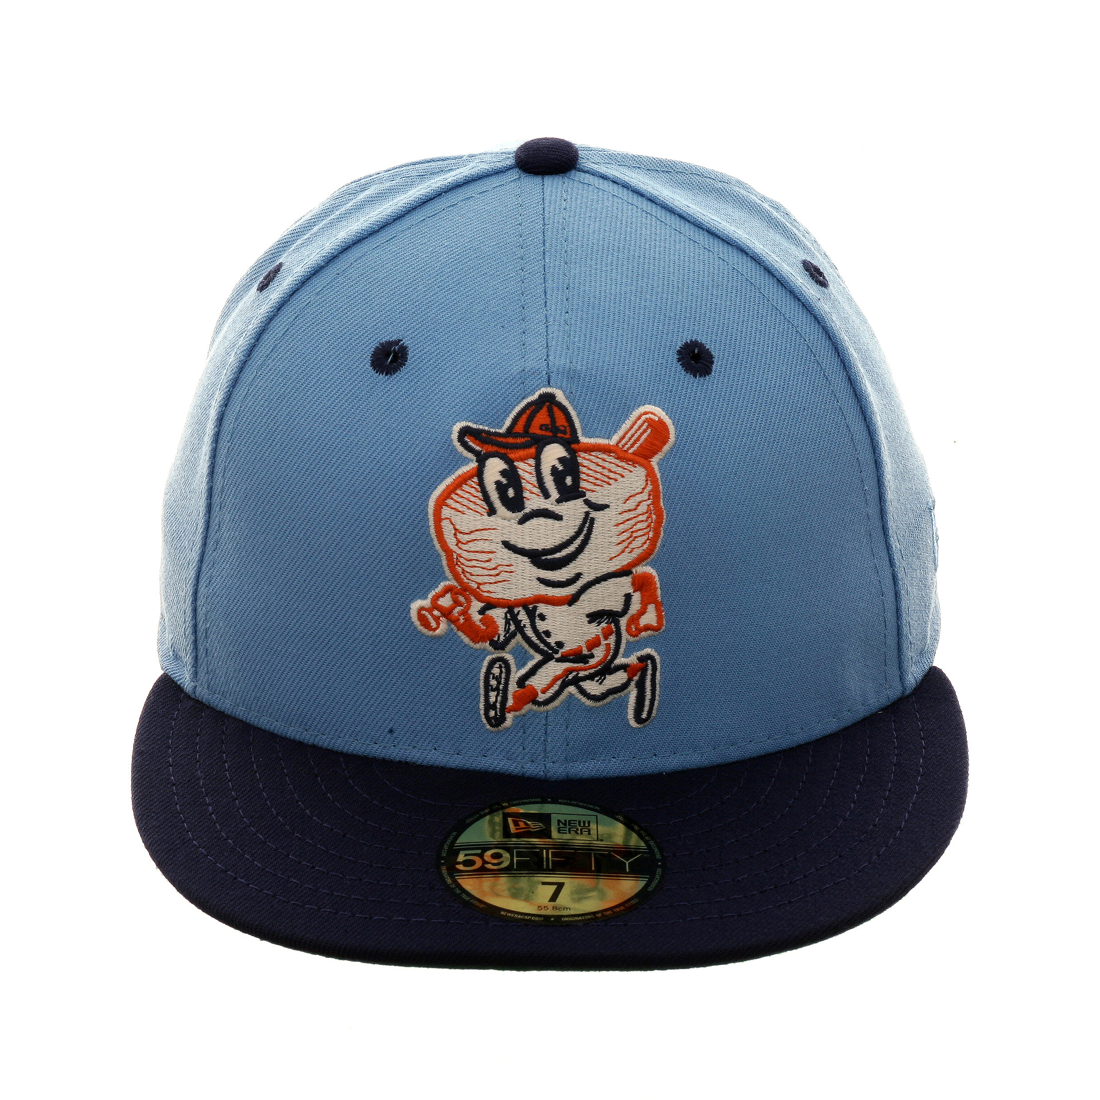 Exclusive New Era 59fifty Greenbow Biscuits Hat 2t Light Blue Light Navy New Era 59fifty New Era Hats